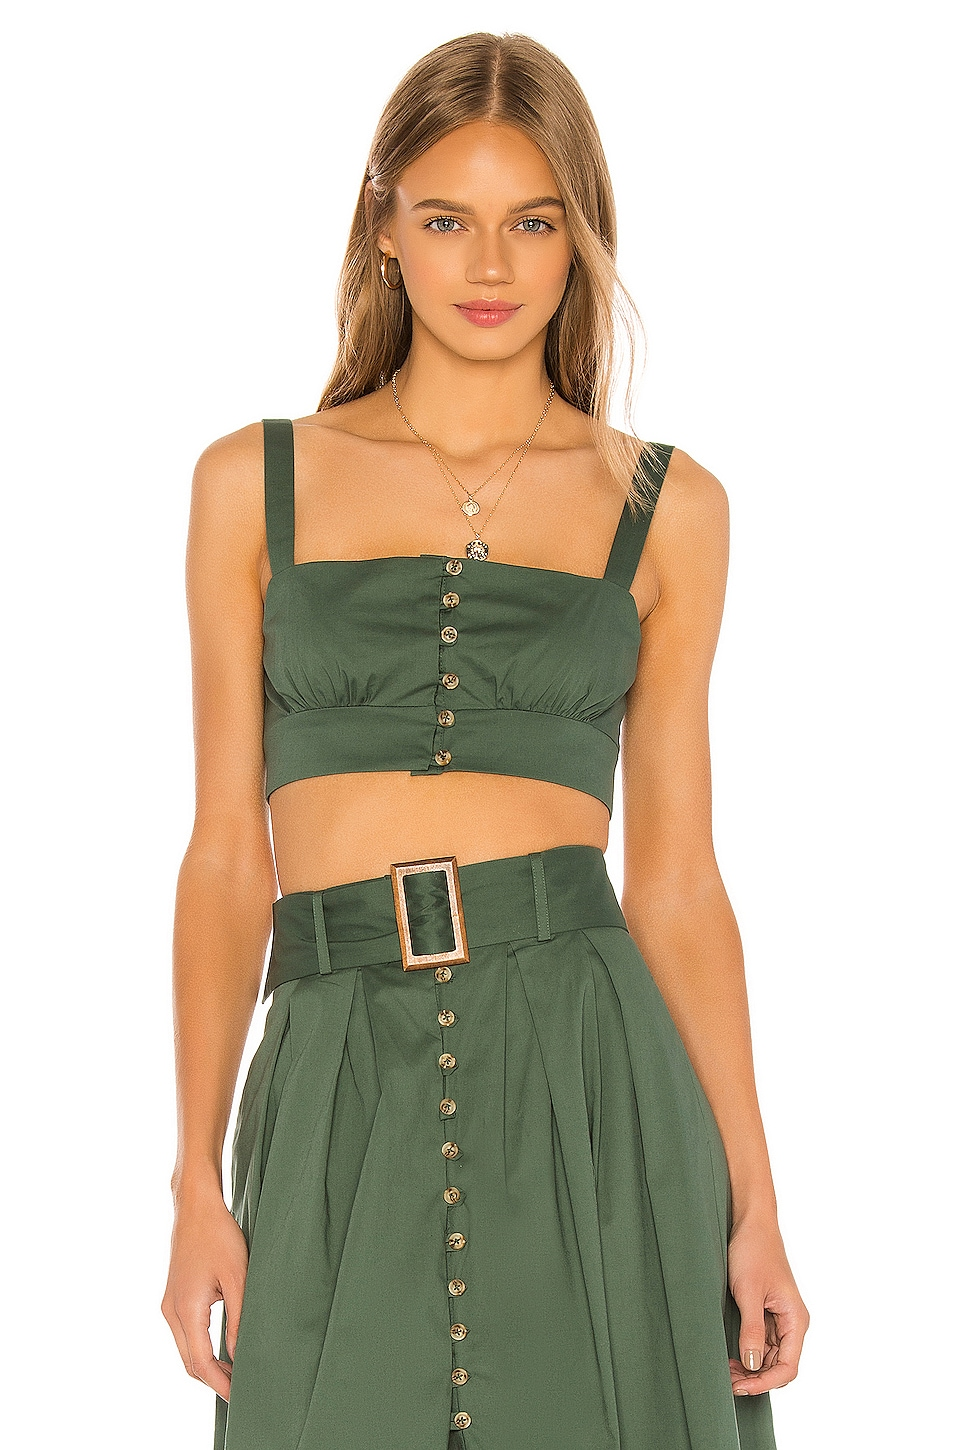 Song of Style Mina Top en Juniper Green